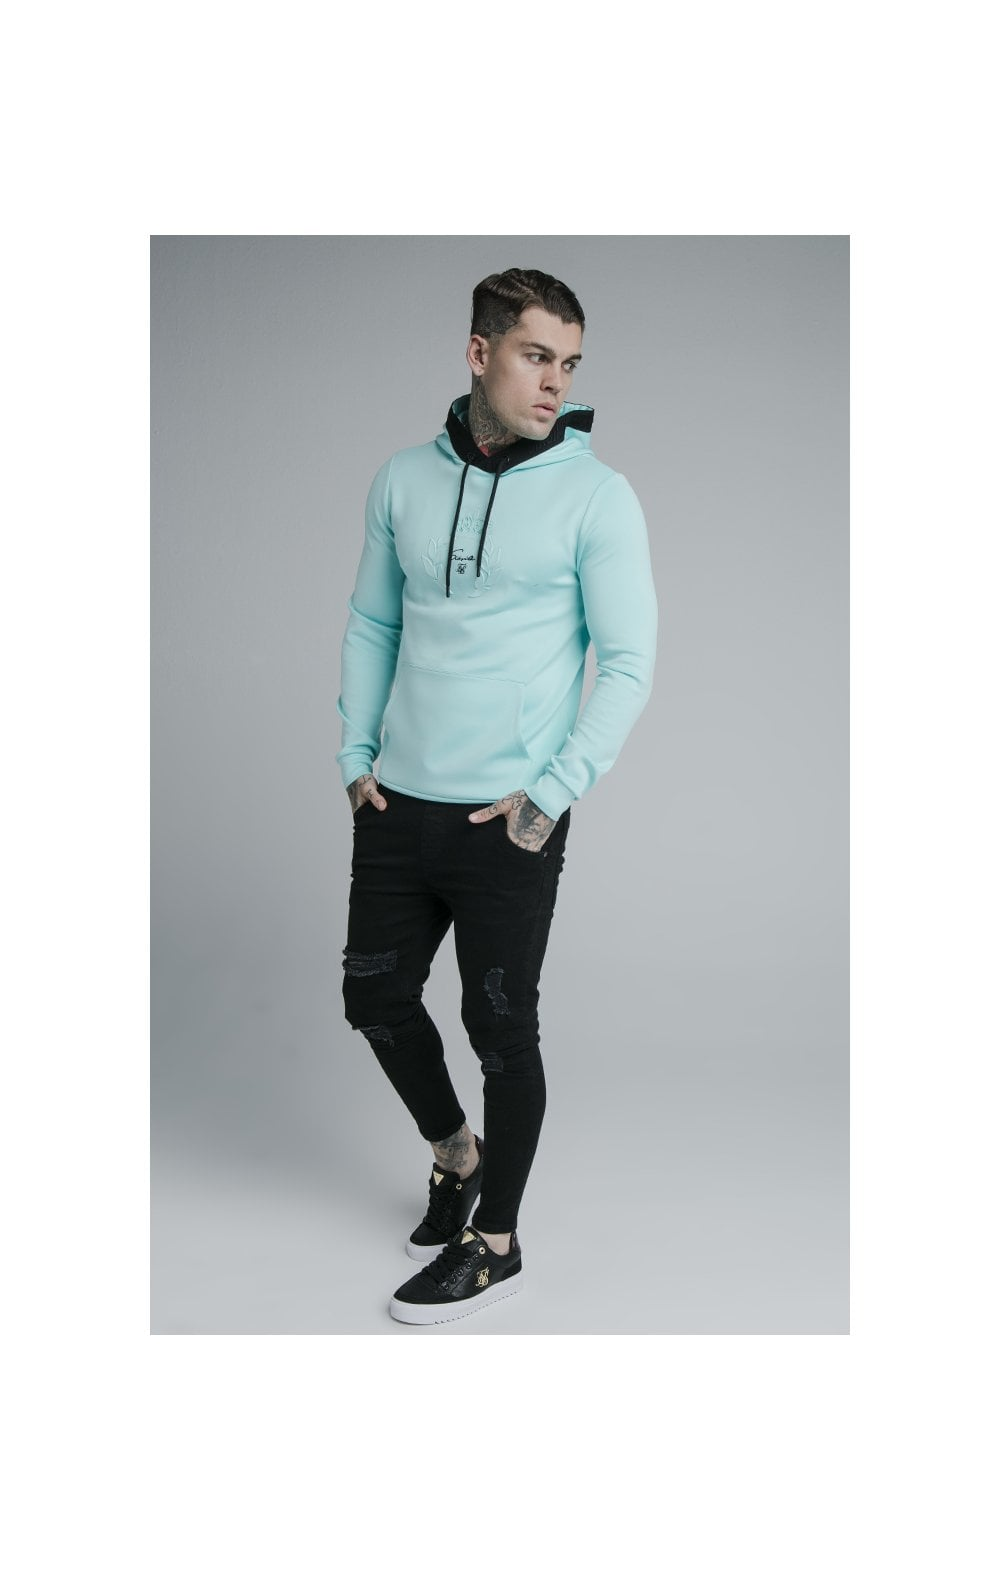 Load image into Gallery viewer, SikSilk Prestige Overhead Hoodie - Teal (2)